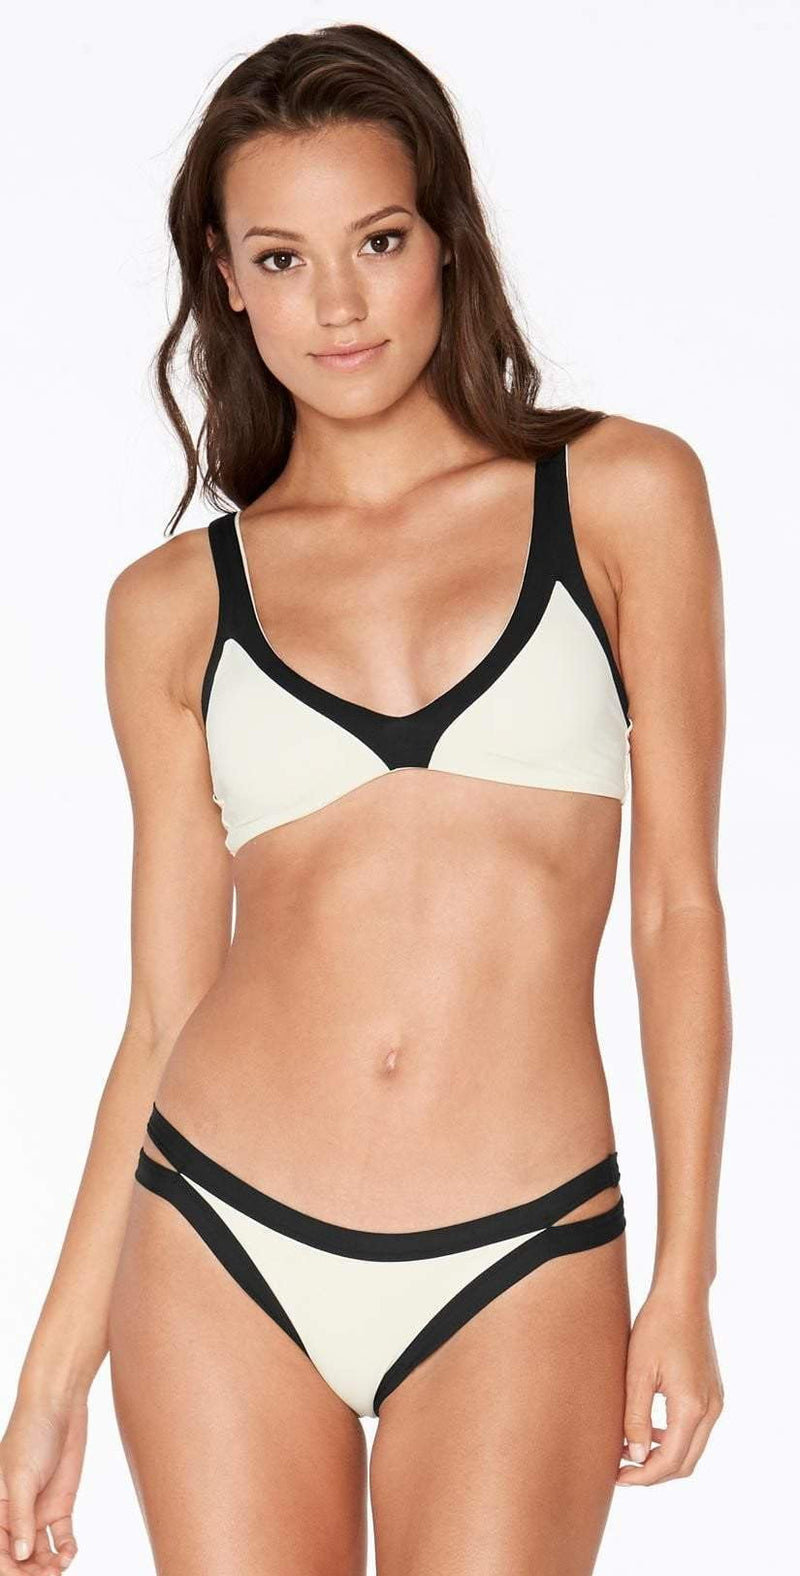 L Space Domino Misty Bralette Top in Cream CBMTT18-CRM: